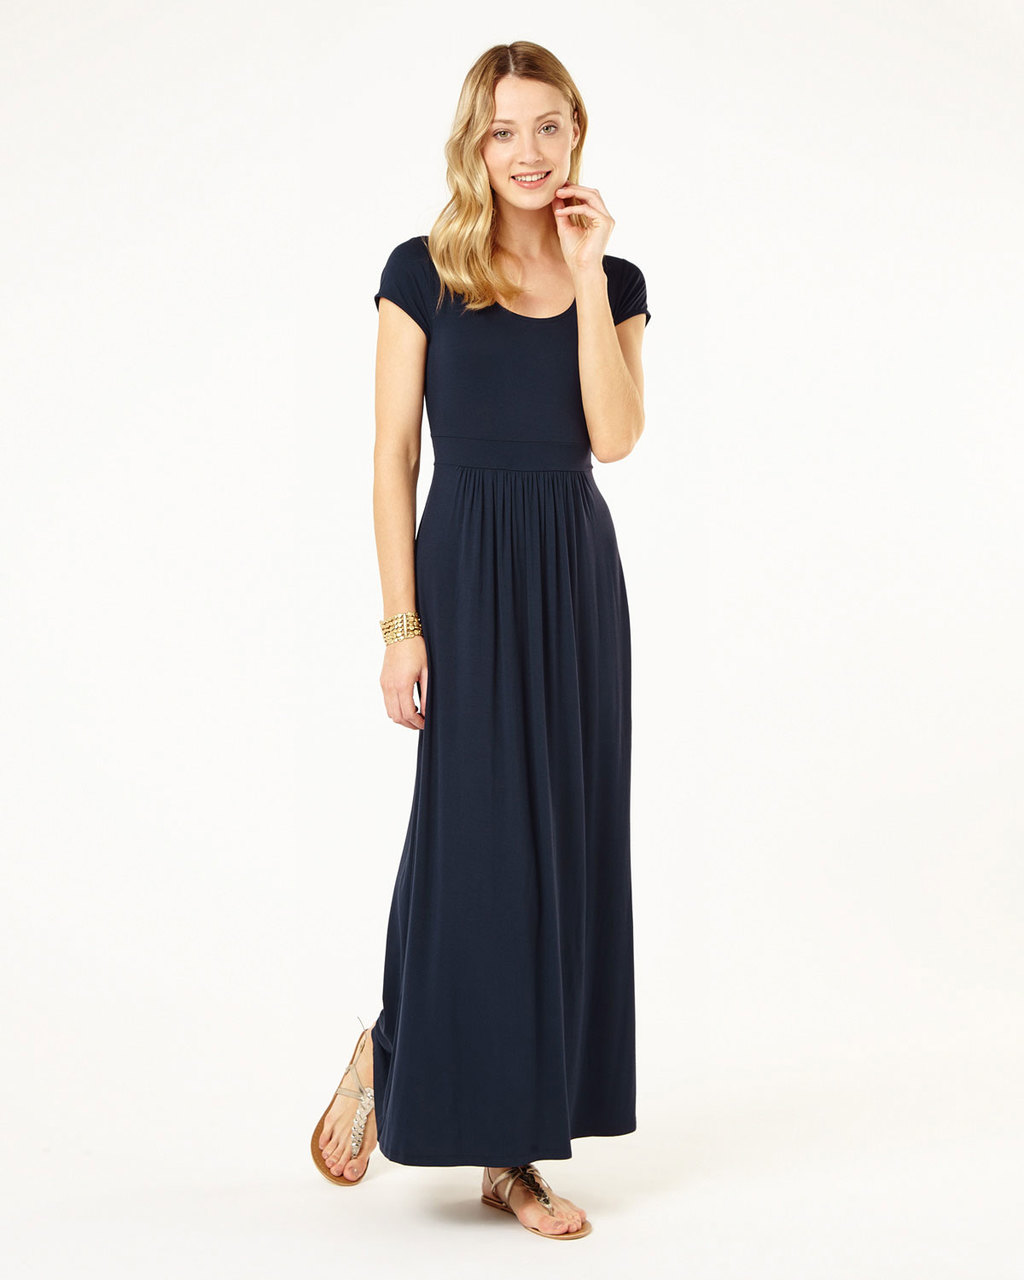 Tilda Plain Maxi - pattern: plain; style: maxi dress; length: ankle length; predominant colour: navy; occasions: casual; fit: body skimming; neckline: scoop; fibres: viscose/rayon - stretch; sleeve length: short sleeve; sleeve style: standard; pattern type: fabric; texture group: jersey - stretchy/drapey; season: s/s 2016